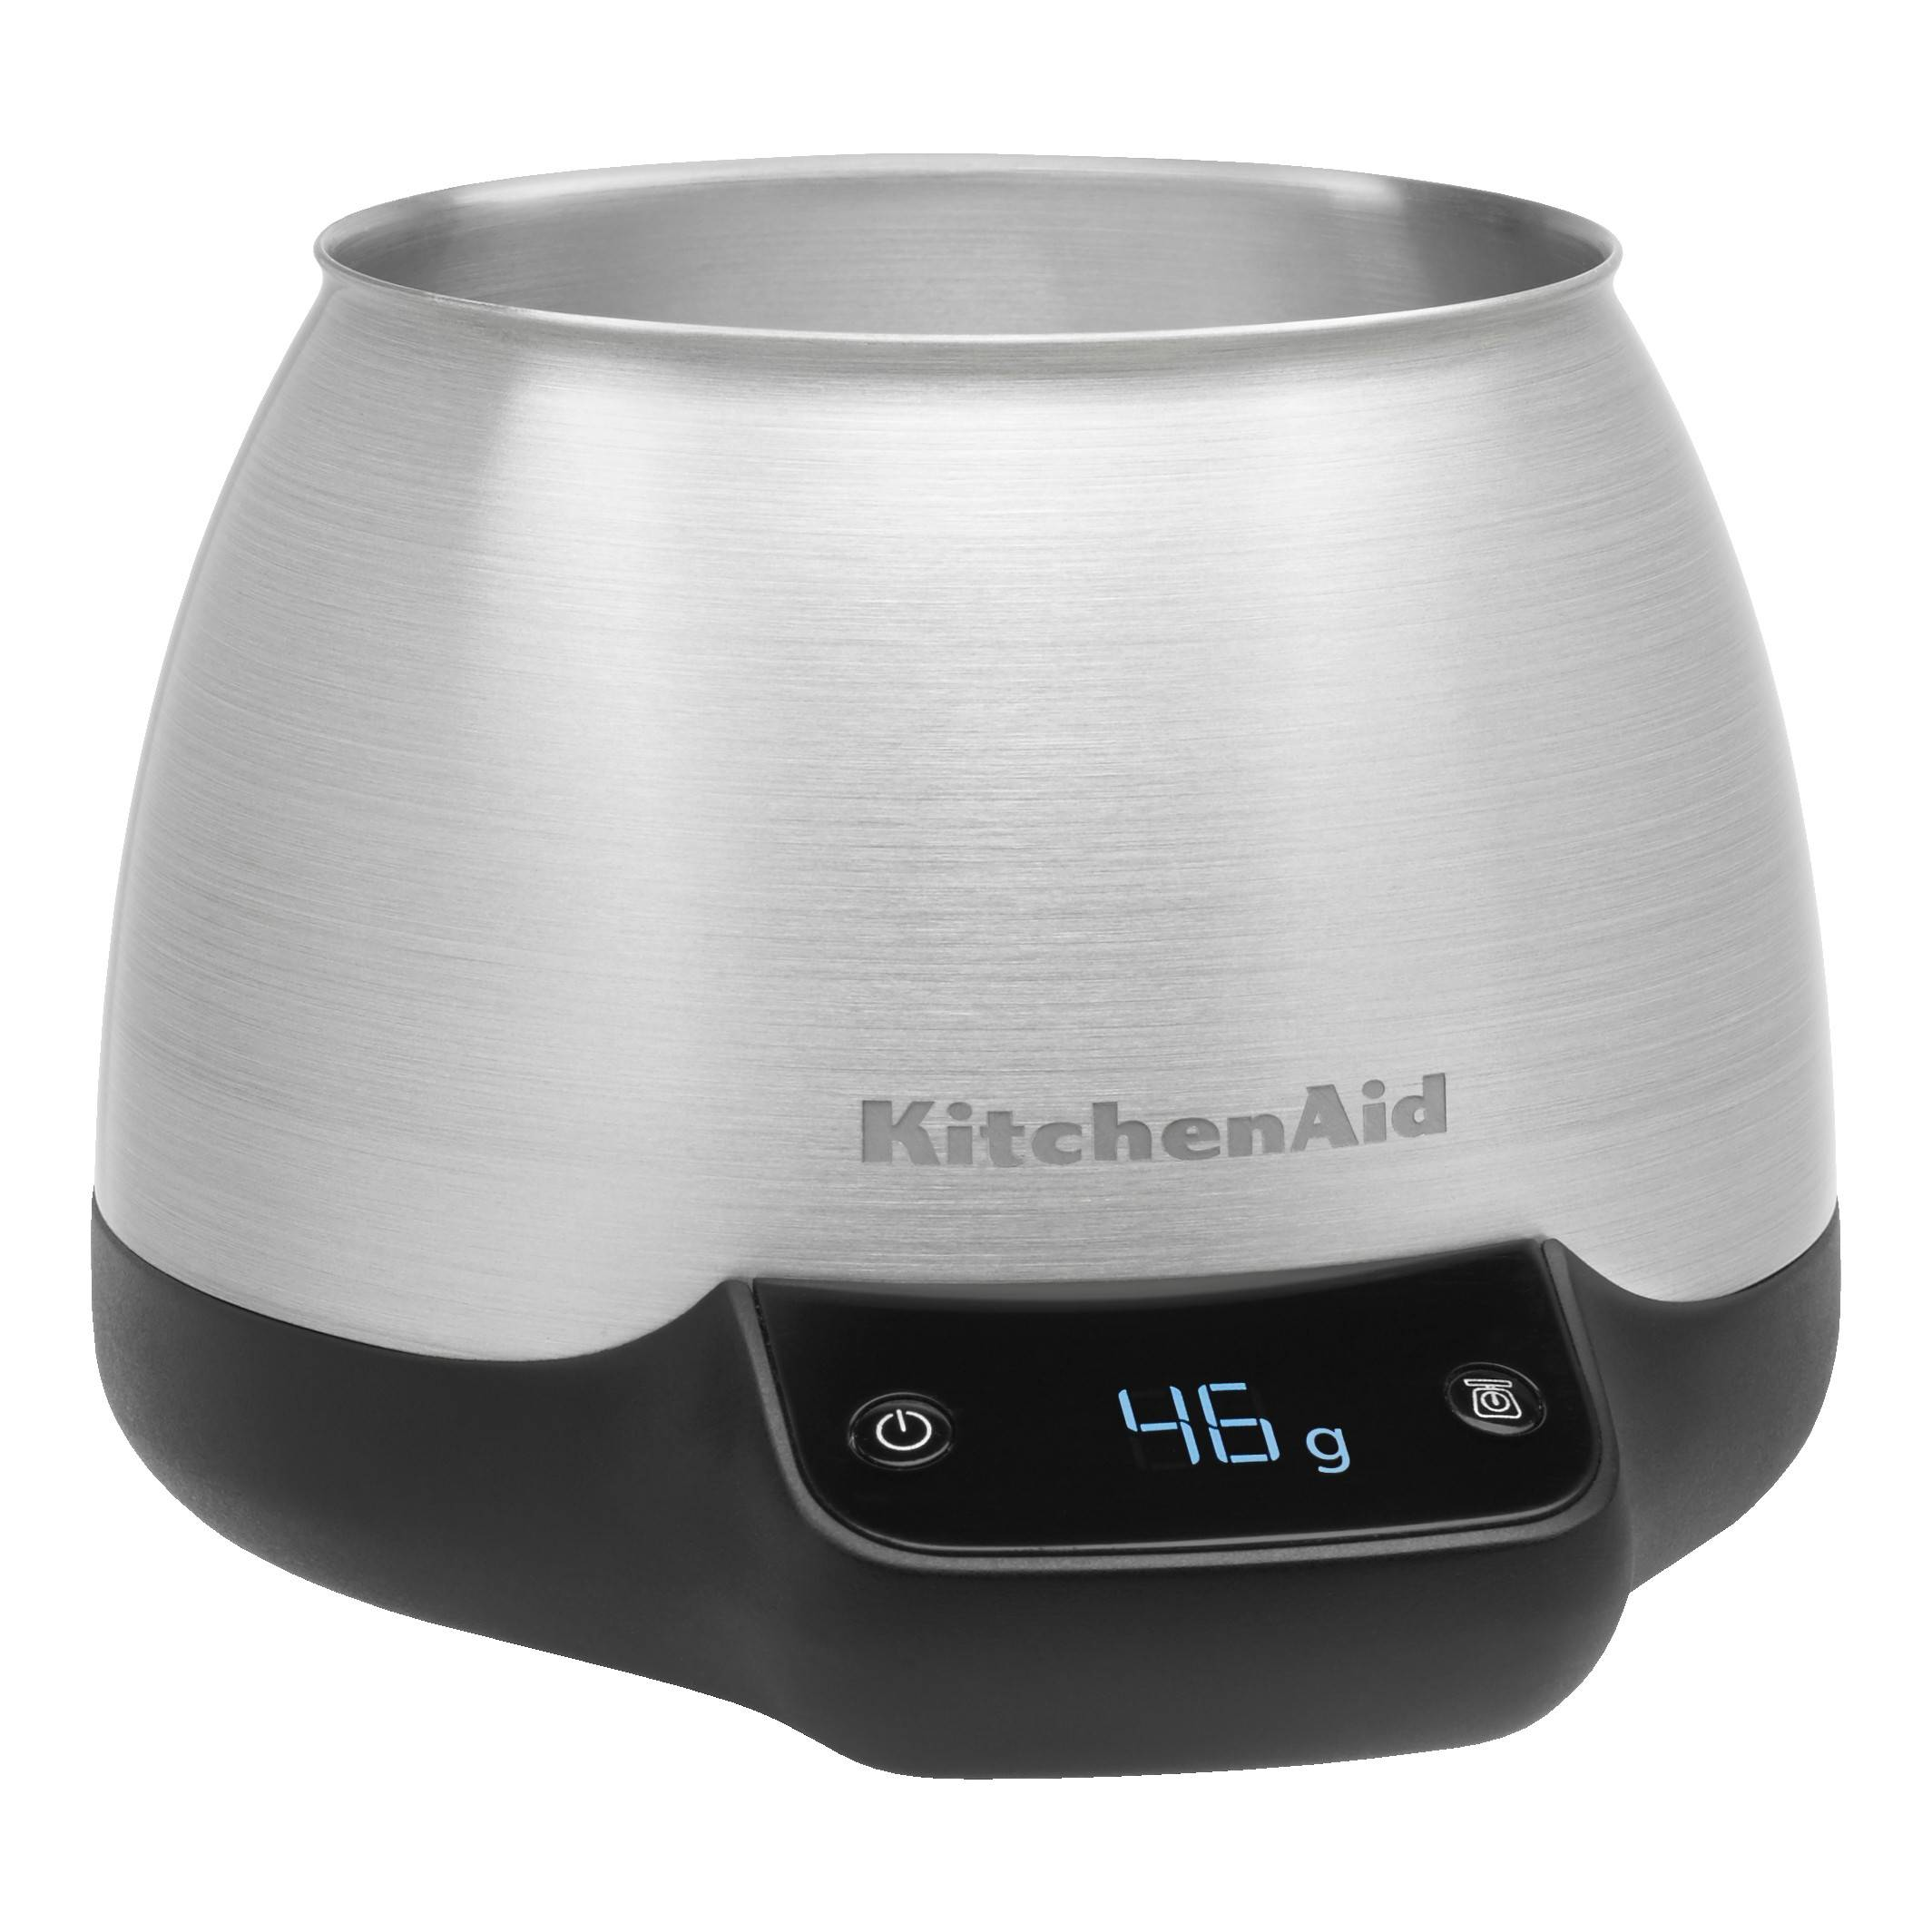 KitchenAid Artisan digitaalivaaka KCG0799SX